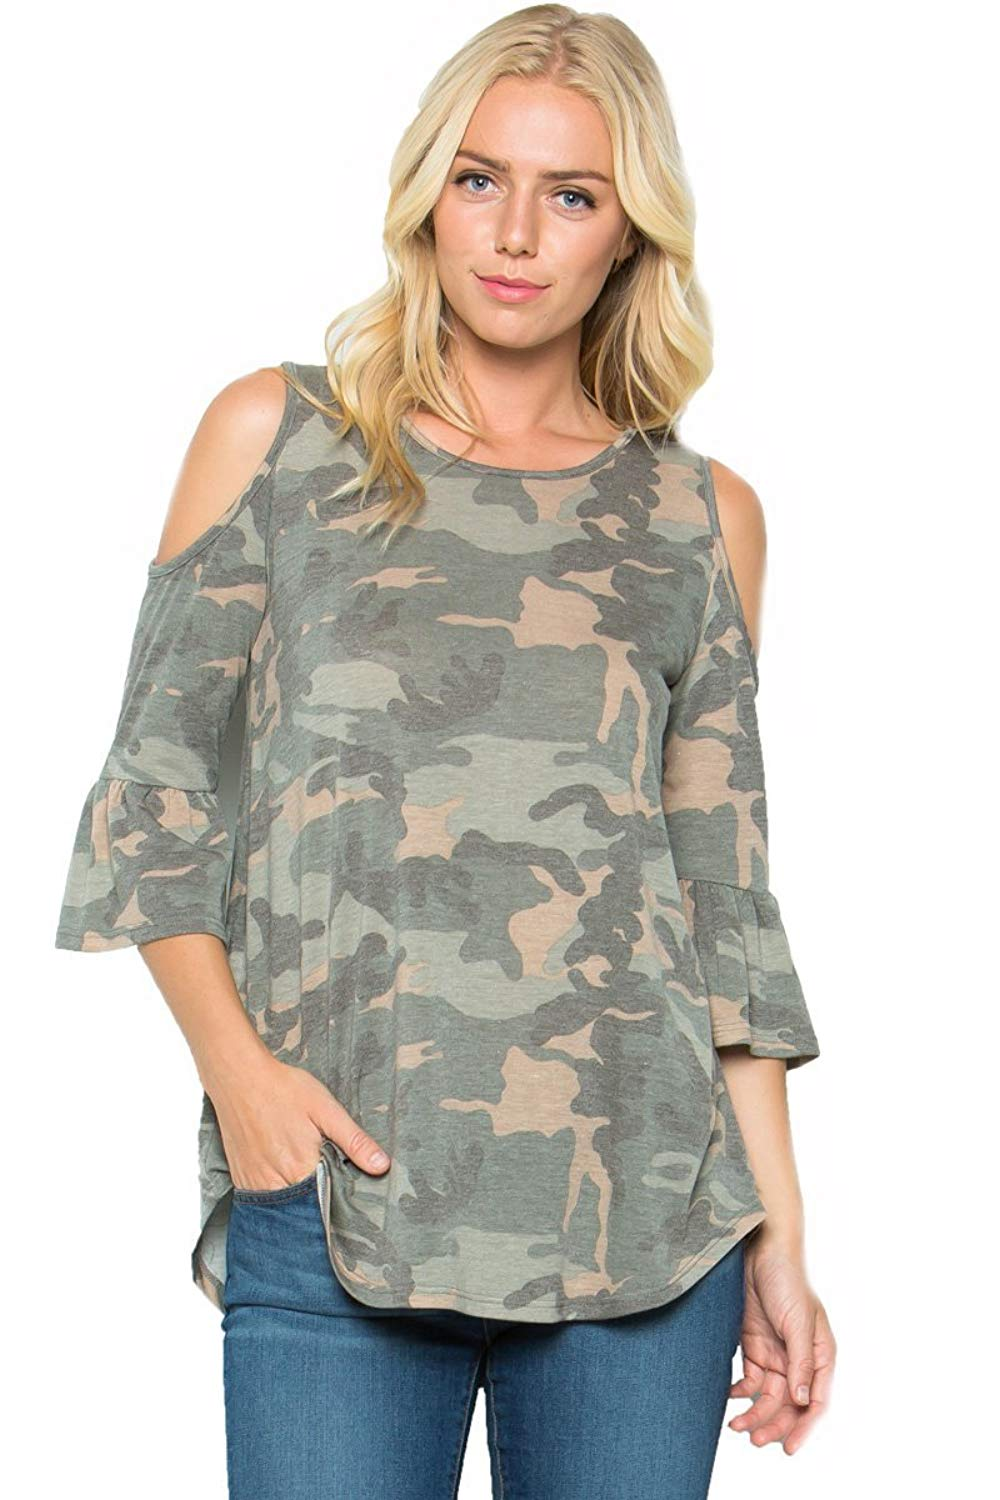 21a7a08caf832 Get Quotations · My Space Women s Camouflage Print Cold Shoulder Jersey Tunic  Top ...